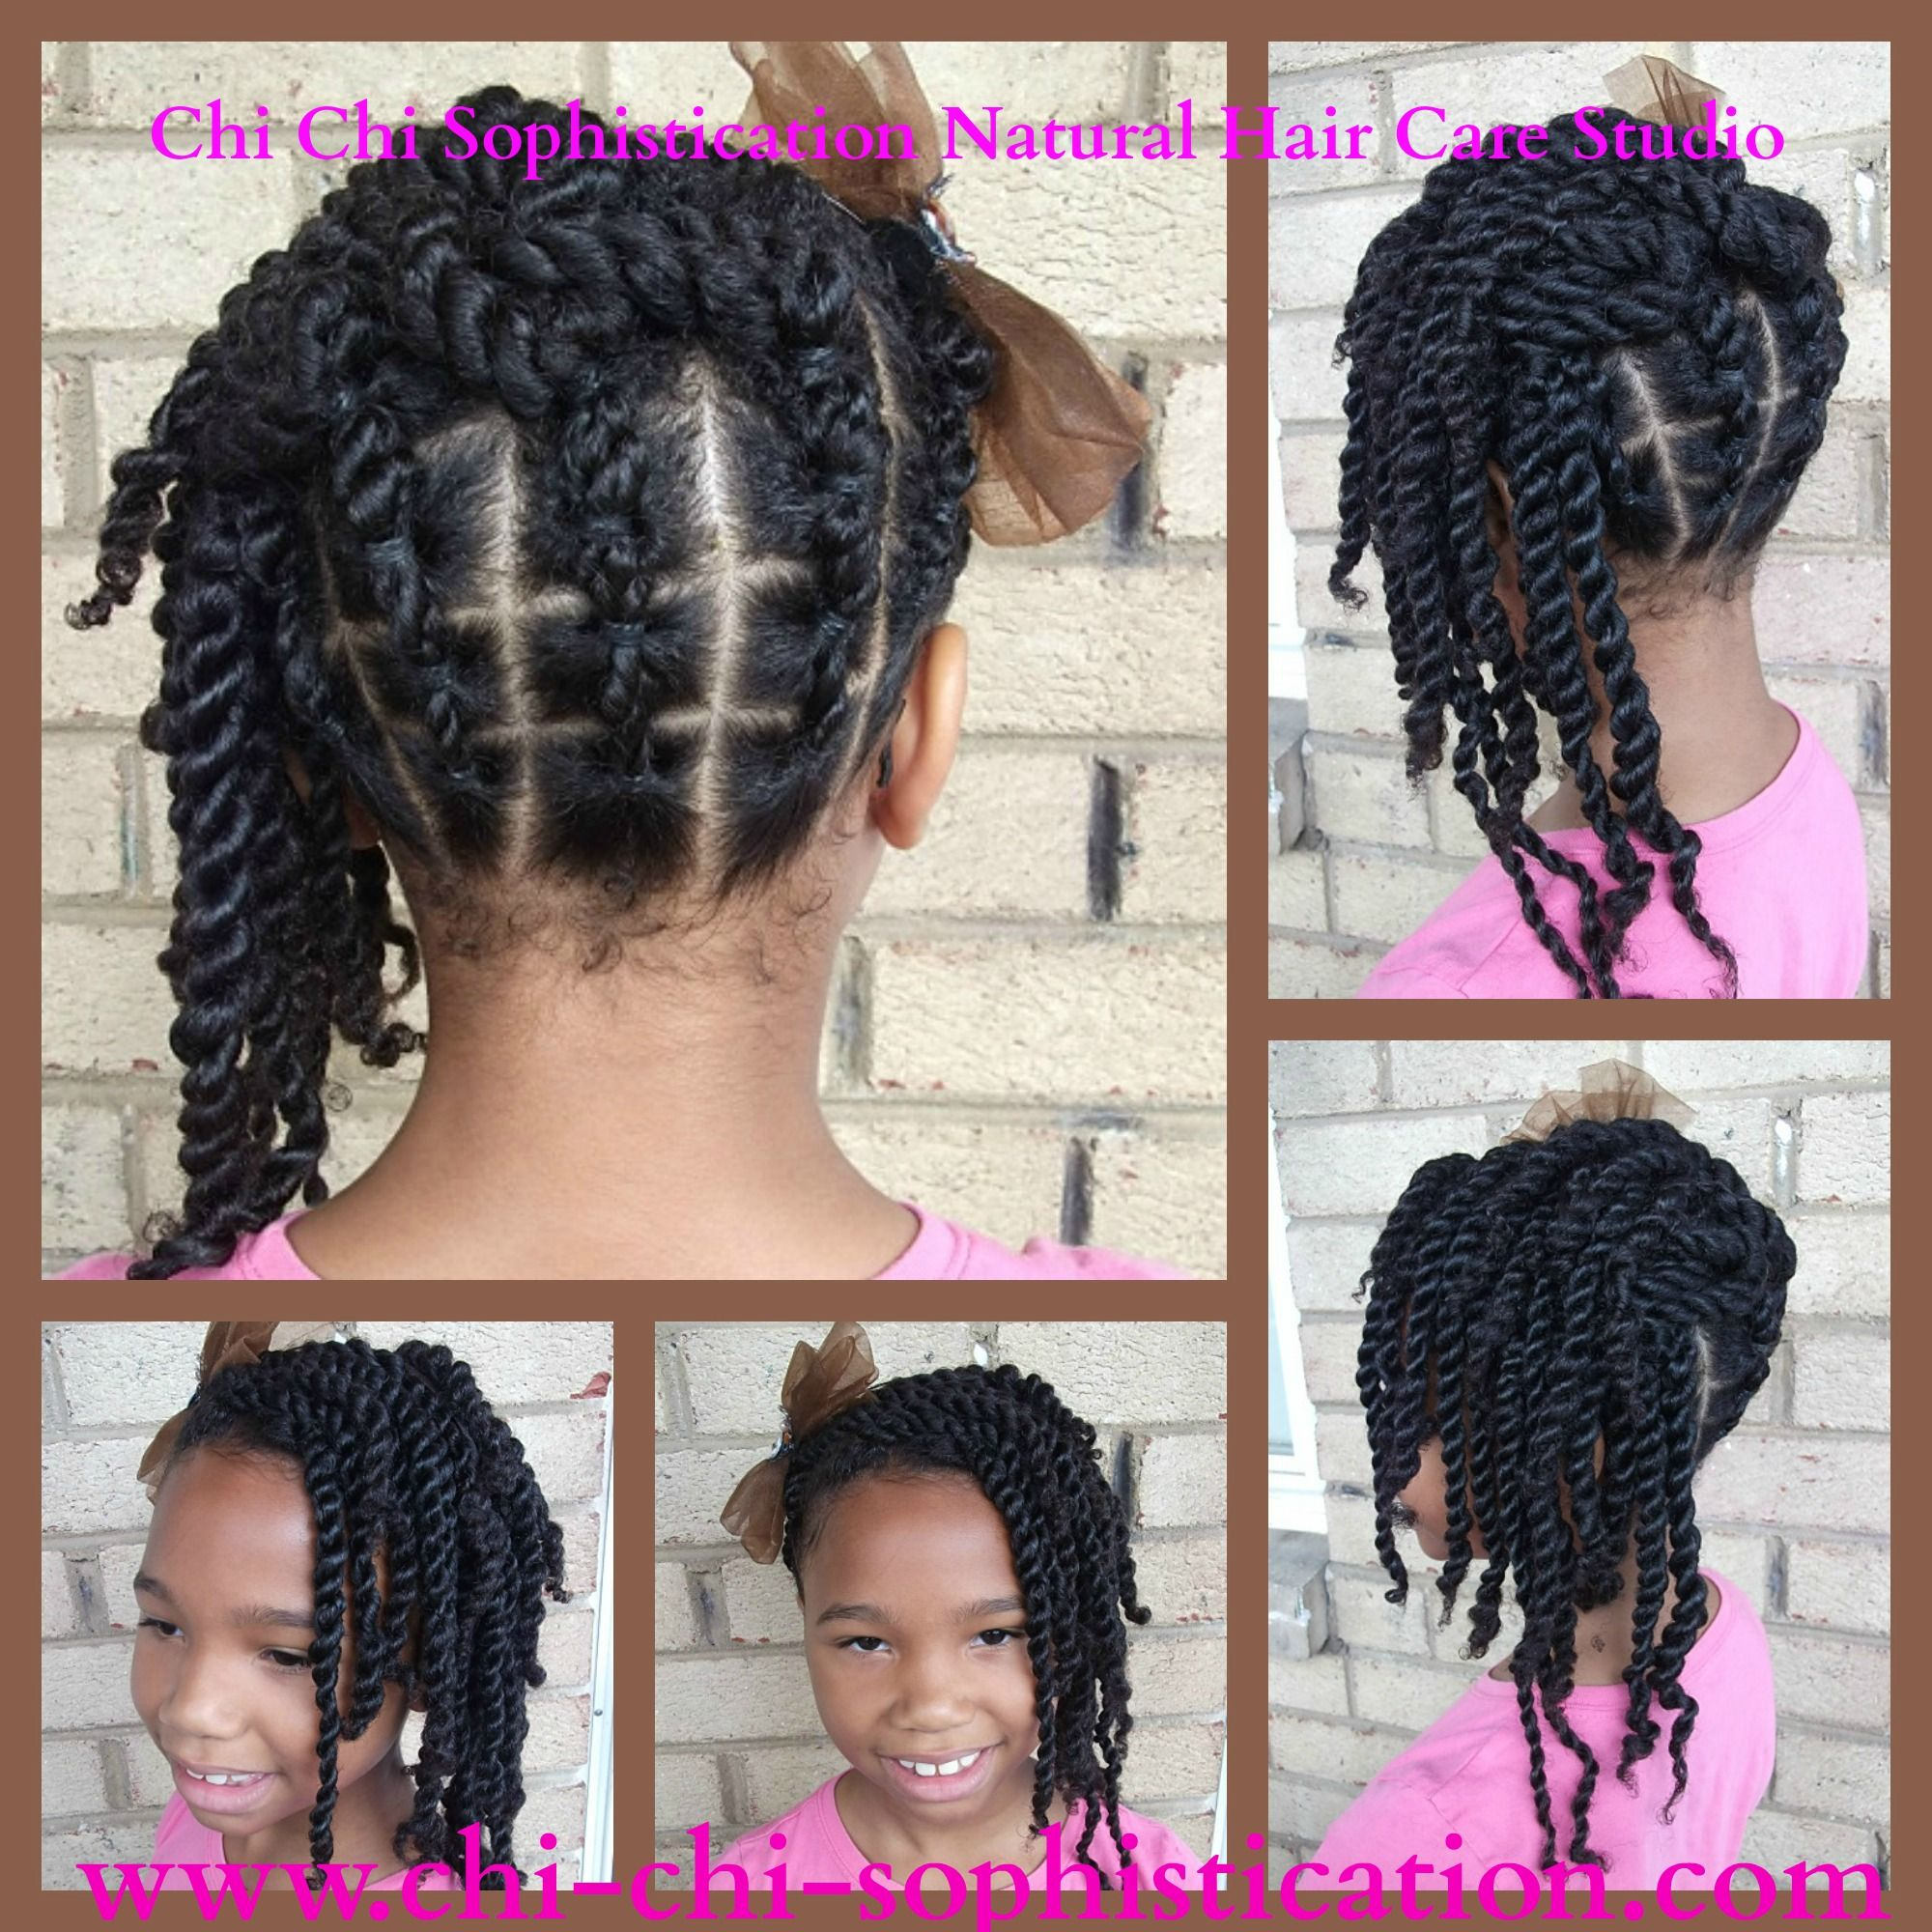 Admirable 1000 Images About Double Strand Twist Hairstyles On Pinterest Short Hairstyles For Black Women Fulllsitofus